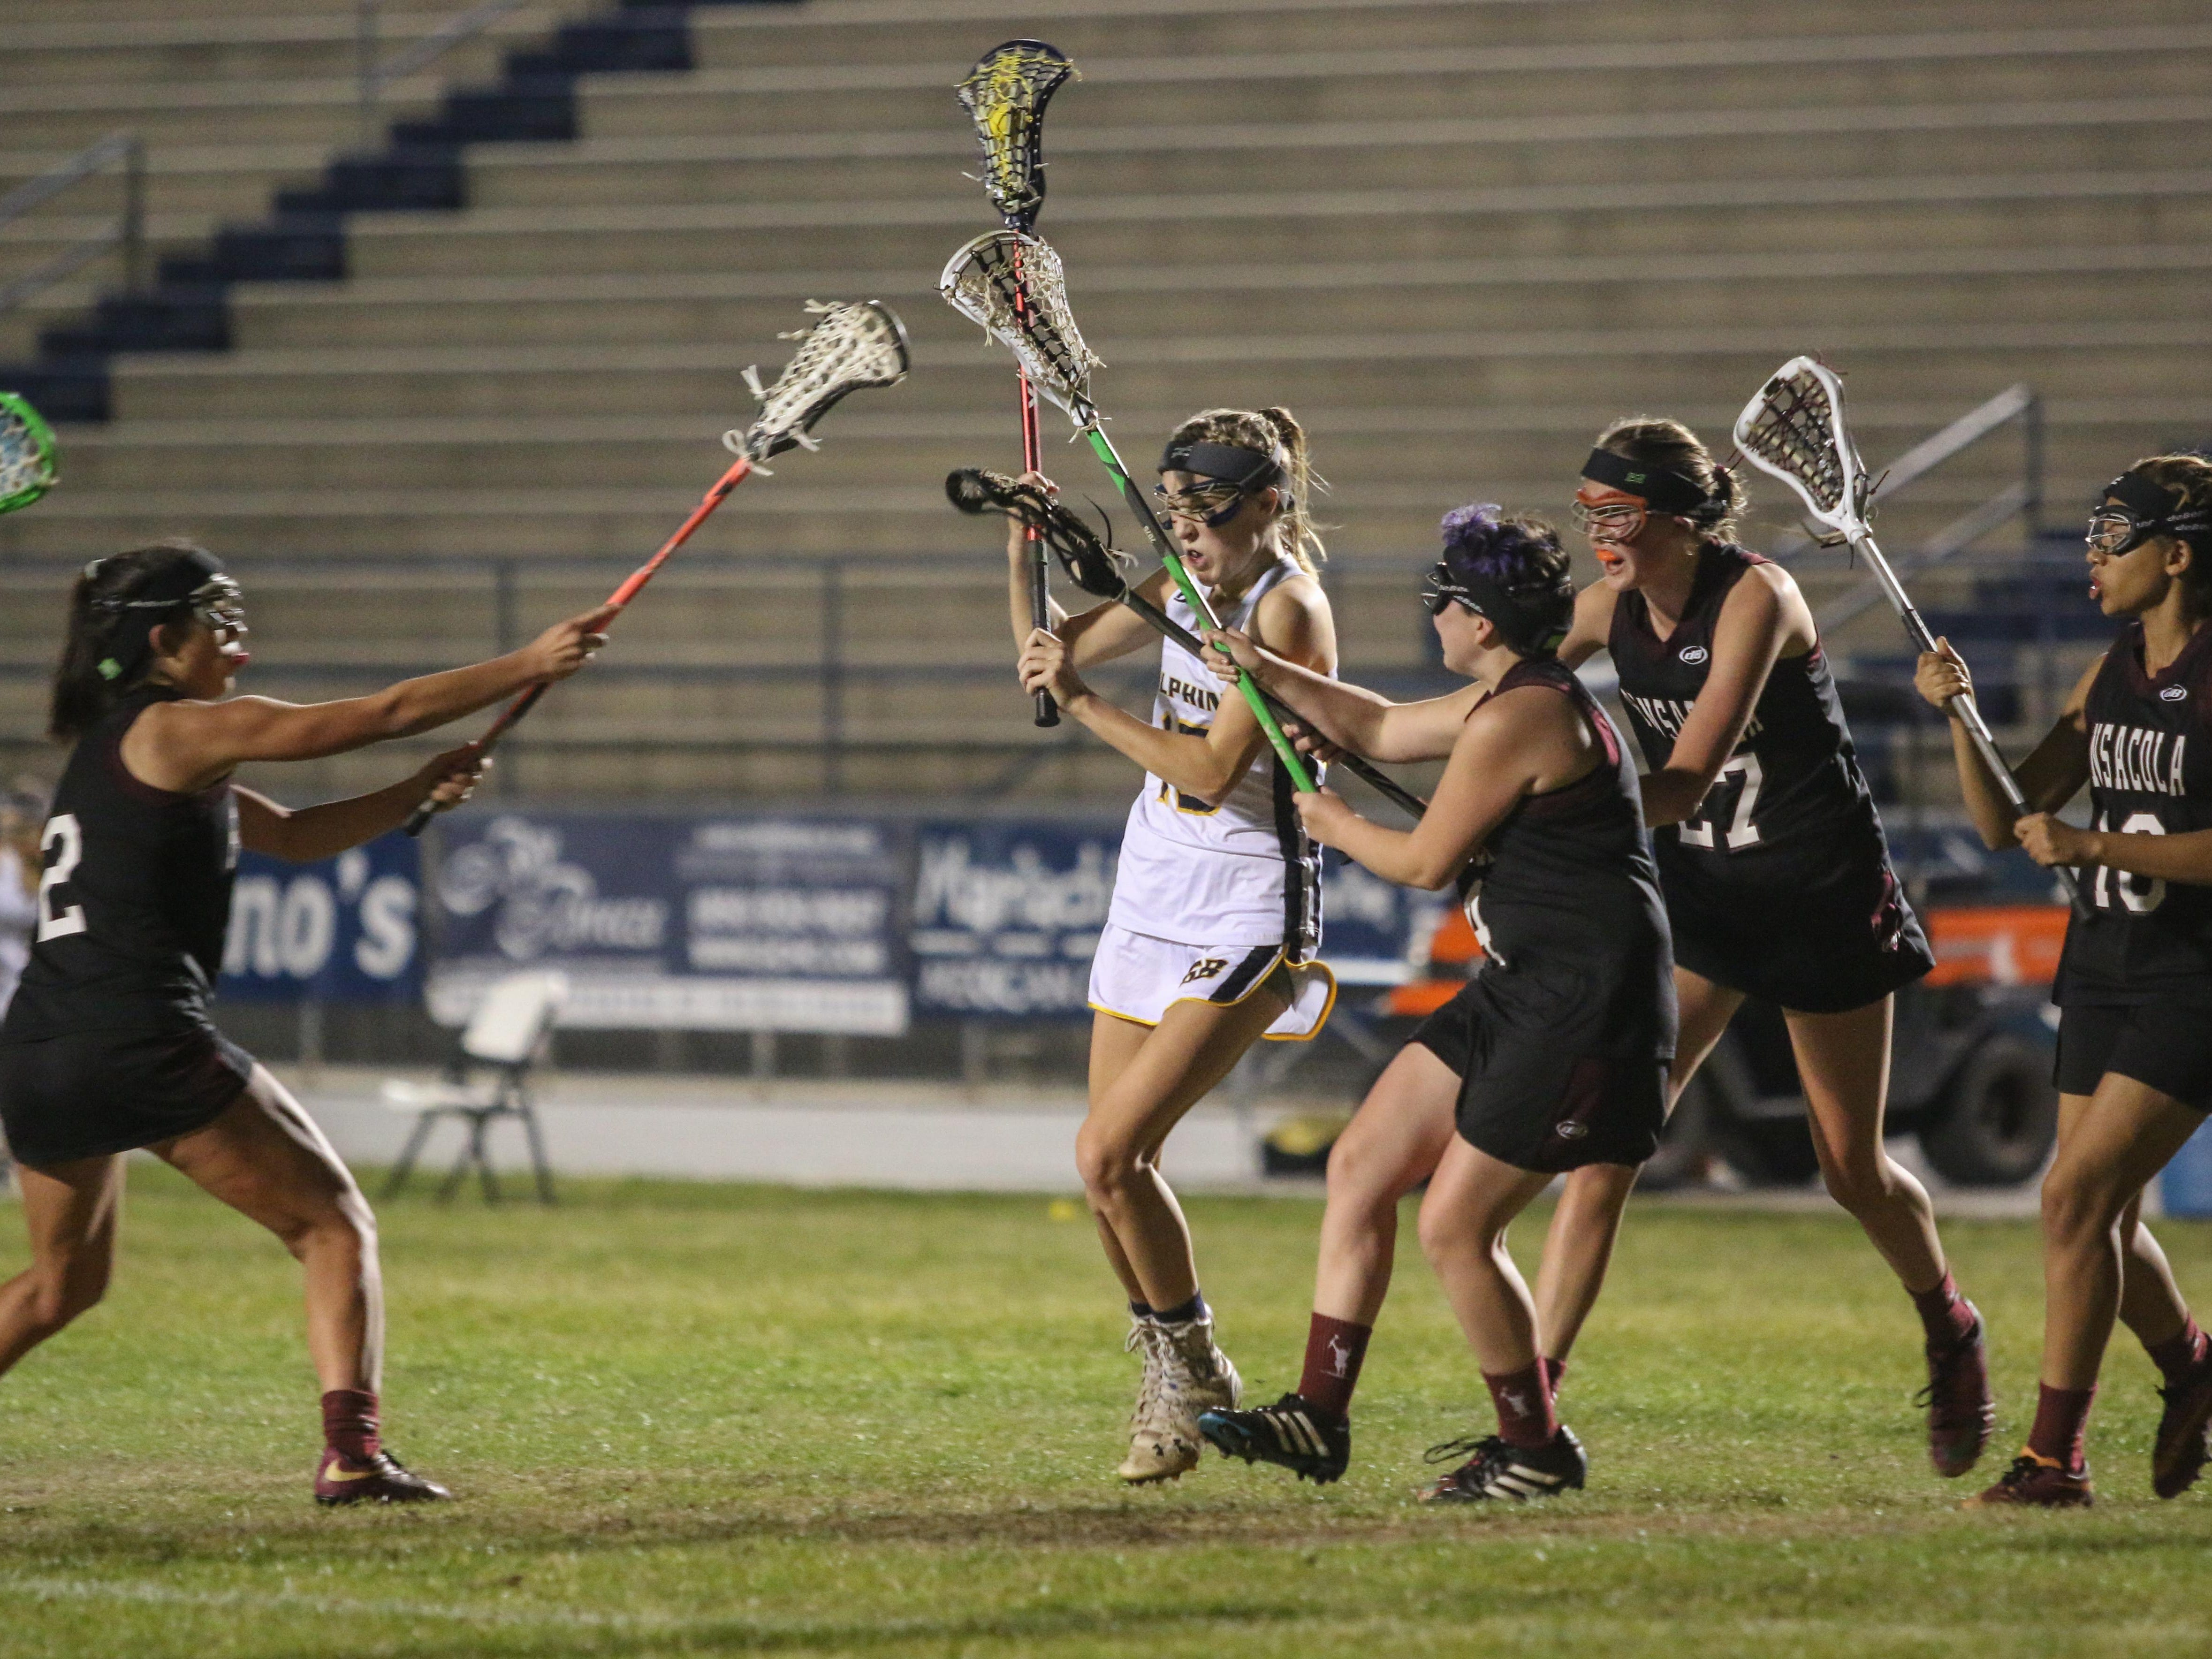 Gulf Breeze's Francis Williams (15) fights her way through the Pensacola players on her way to the goal Thursday night during the District 1-1A girls lacrosse championship game at Gulf Breeze High School.